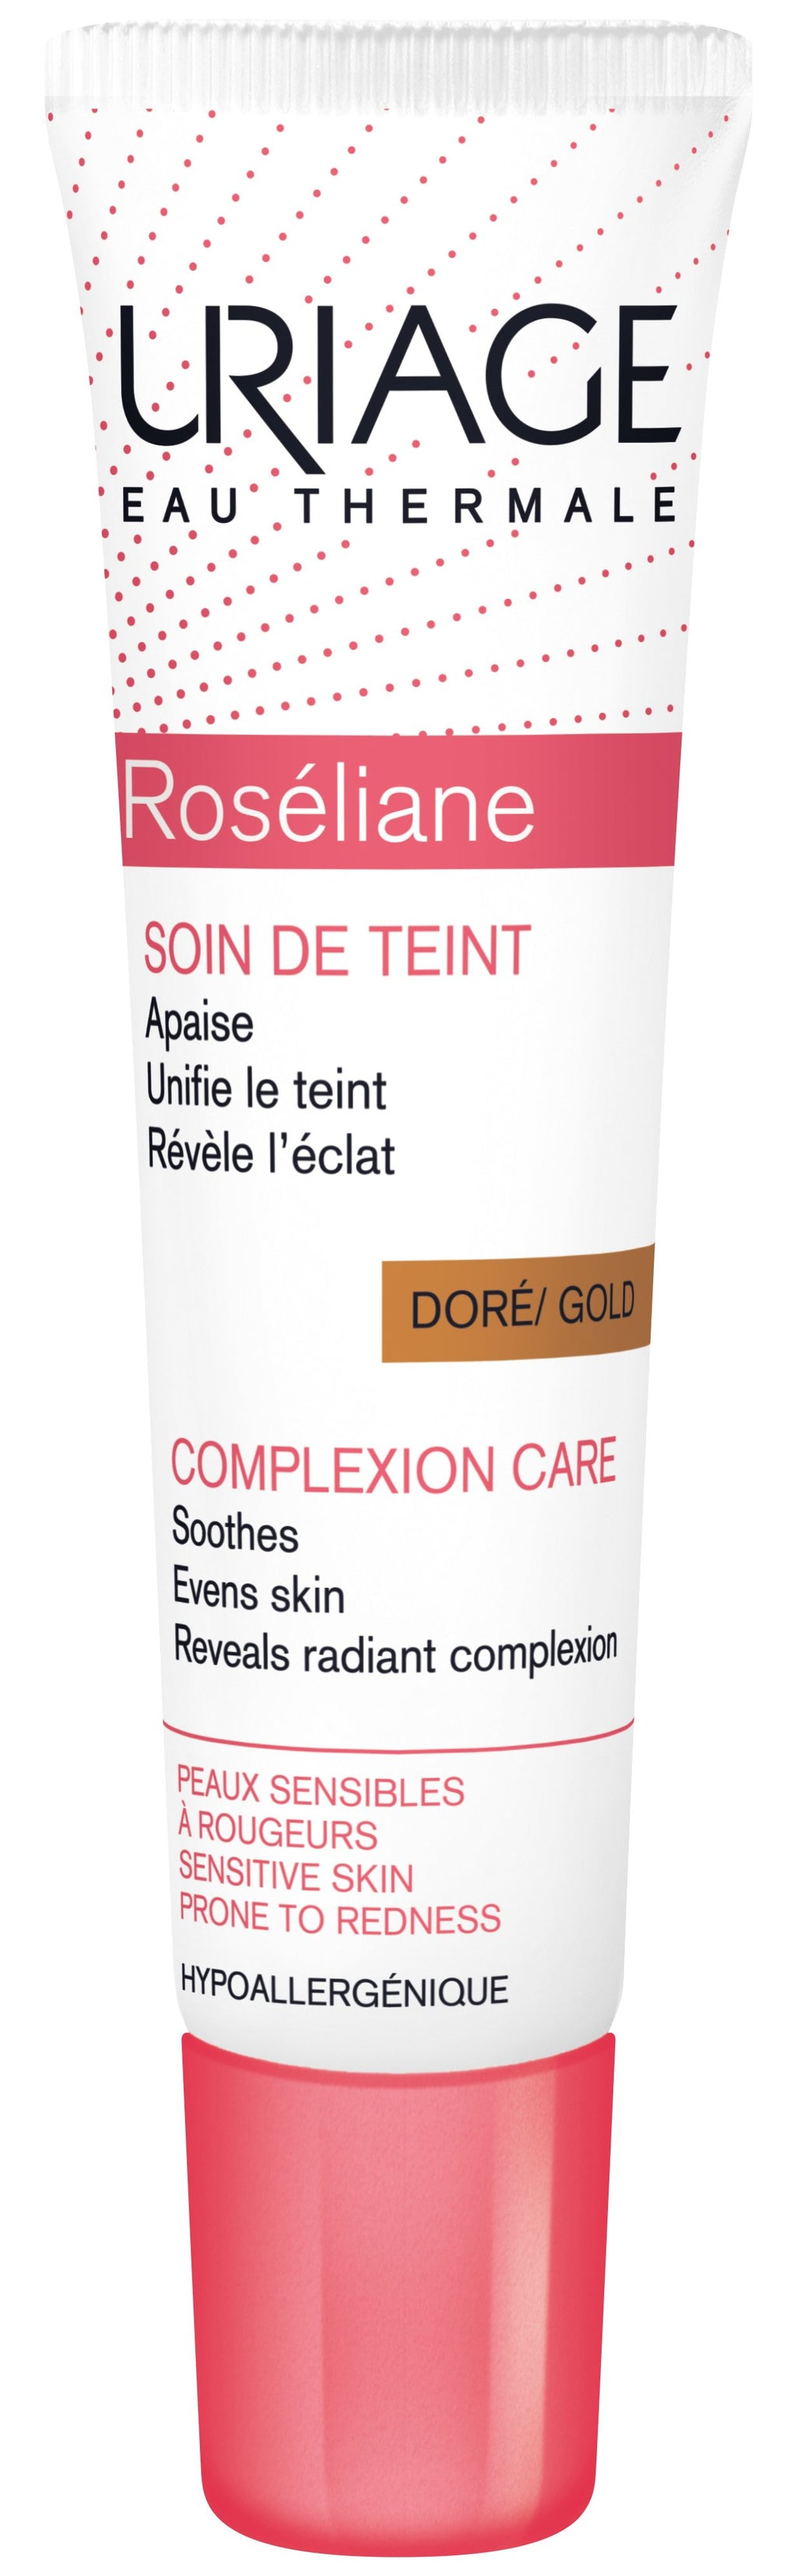 uriage-roseliane-gold-tinted-emulsion-cosmetics-online